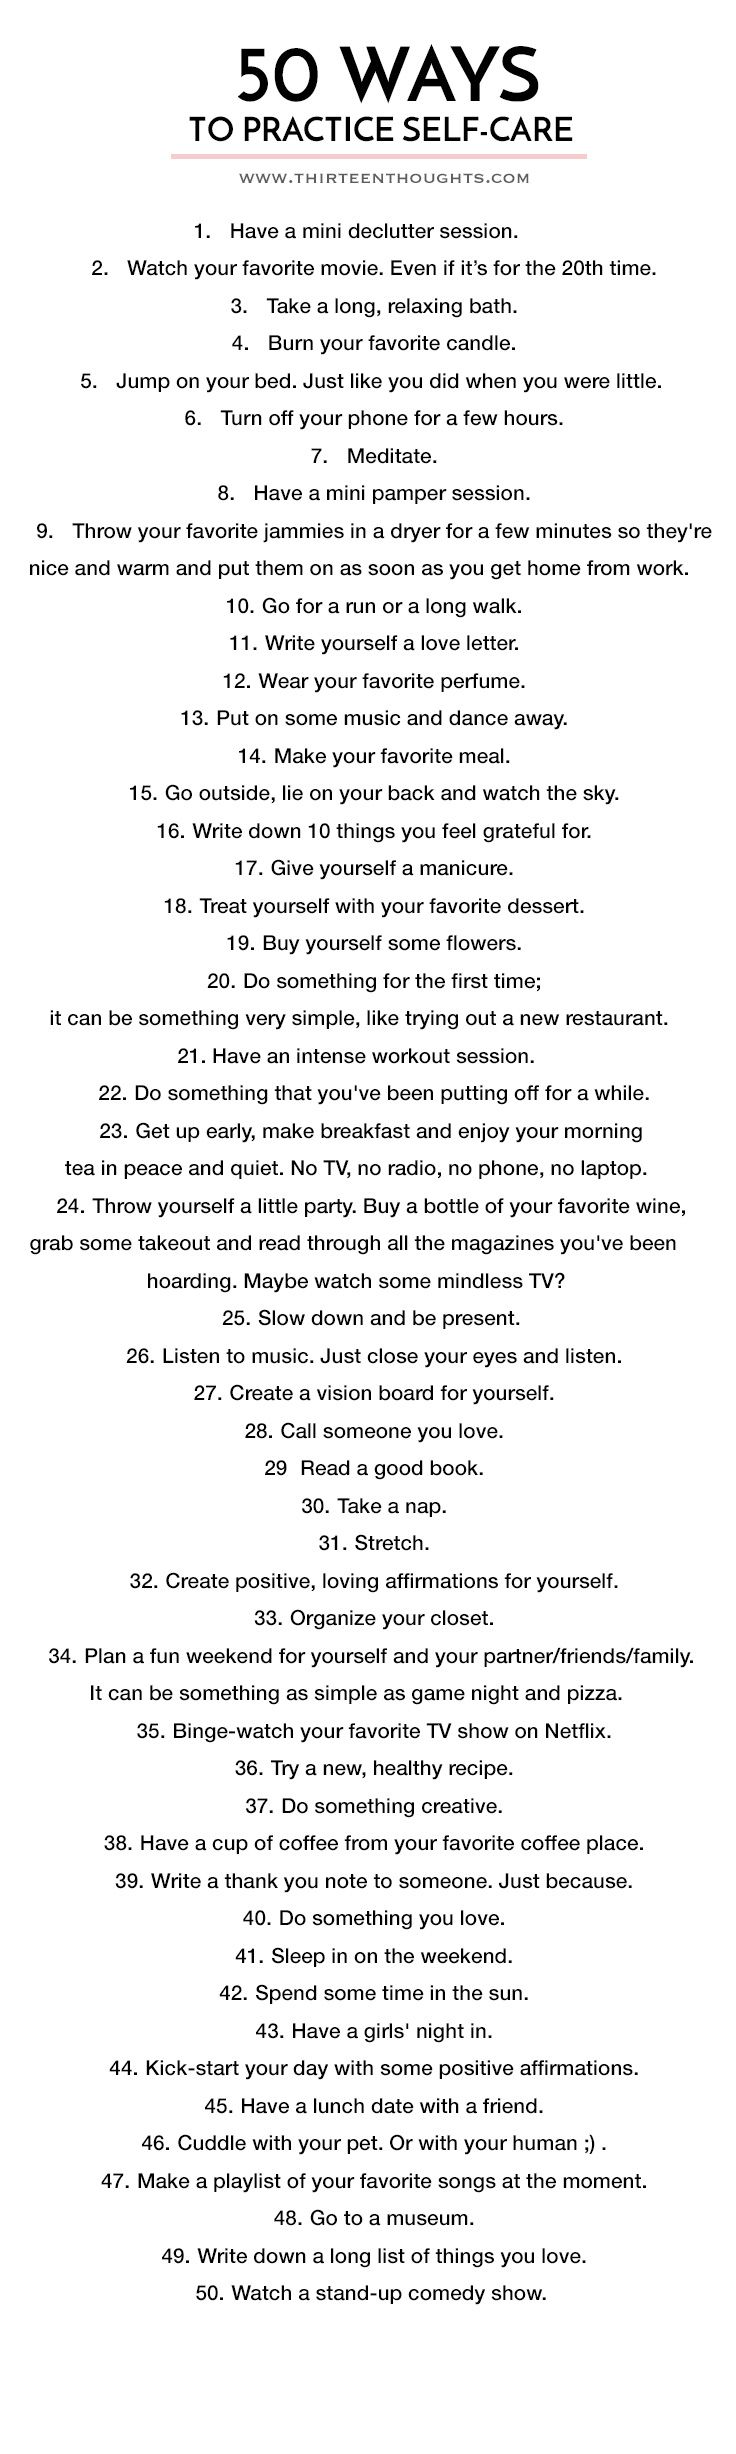 50 Ways To Practice Self-Care - Thirteen Thoughts